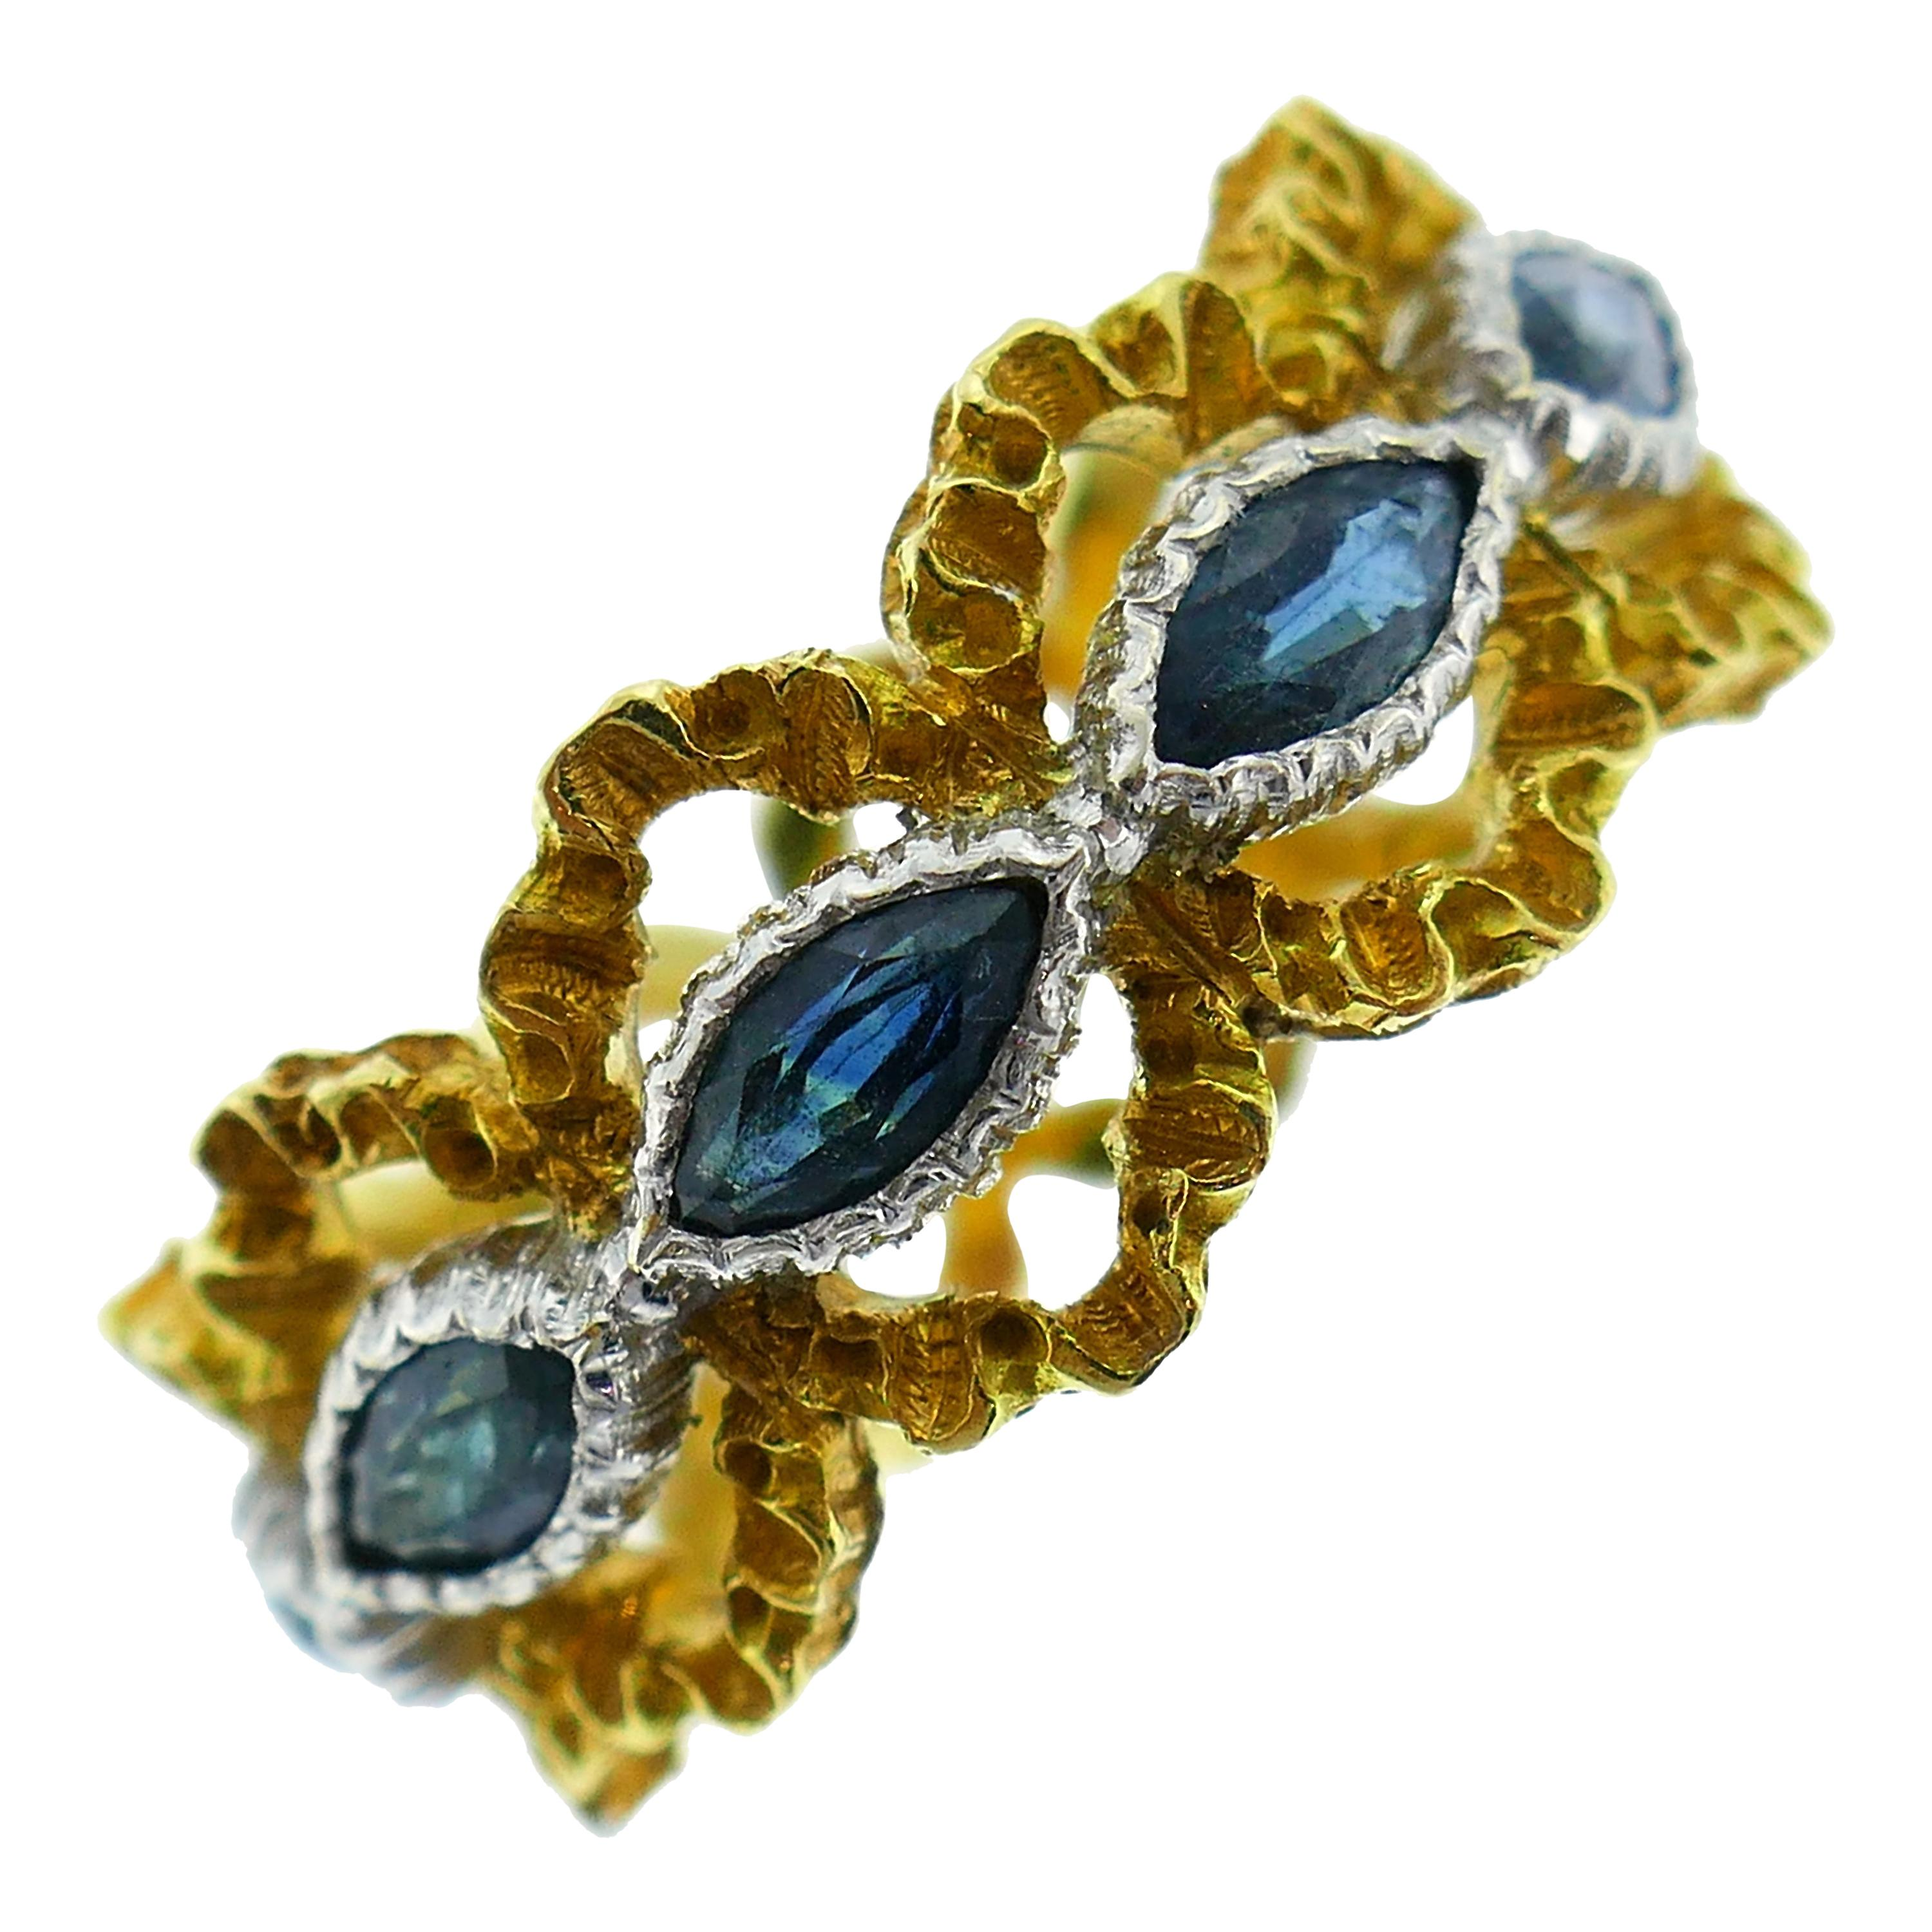 e7adce7b1 Antique and Vintage Rings and Diamond Rings For Sale at 1stdibs